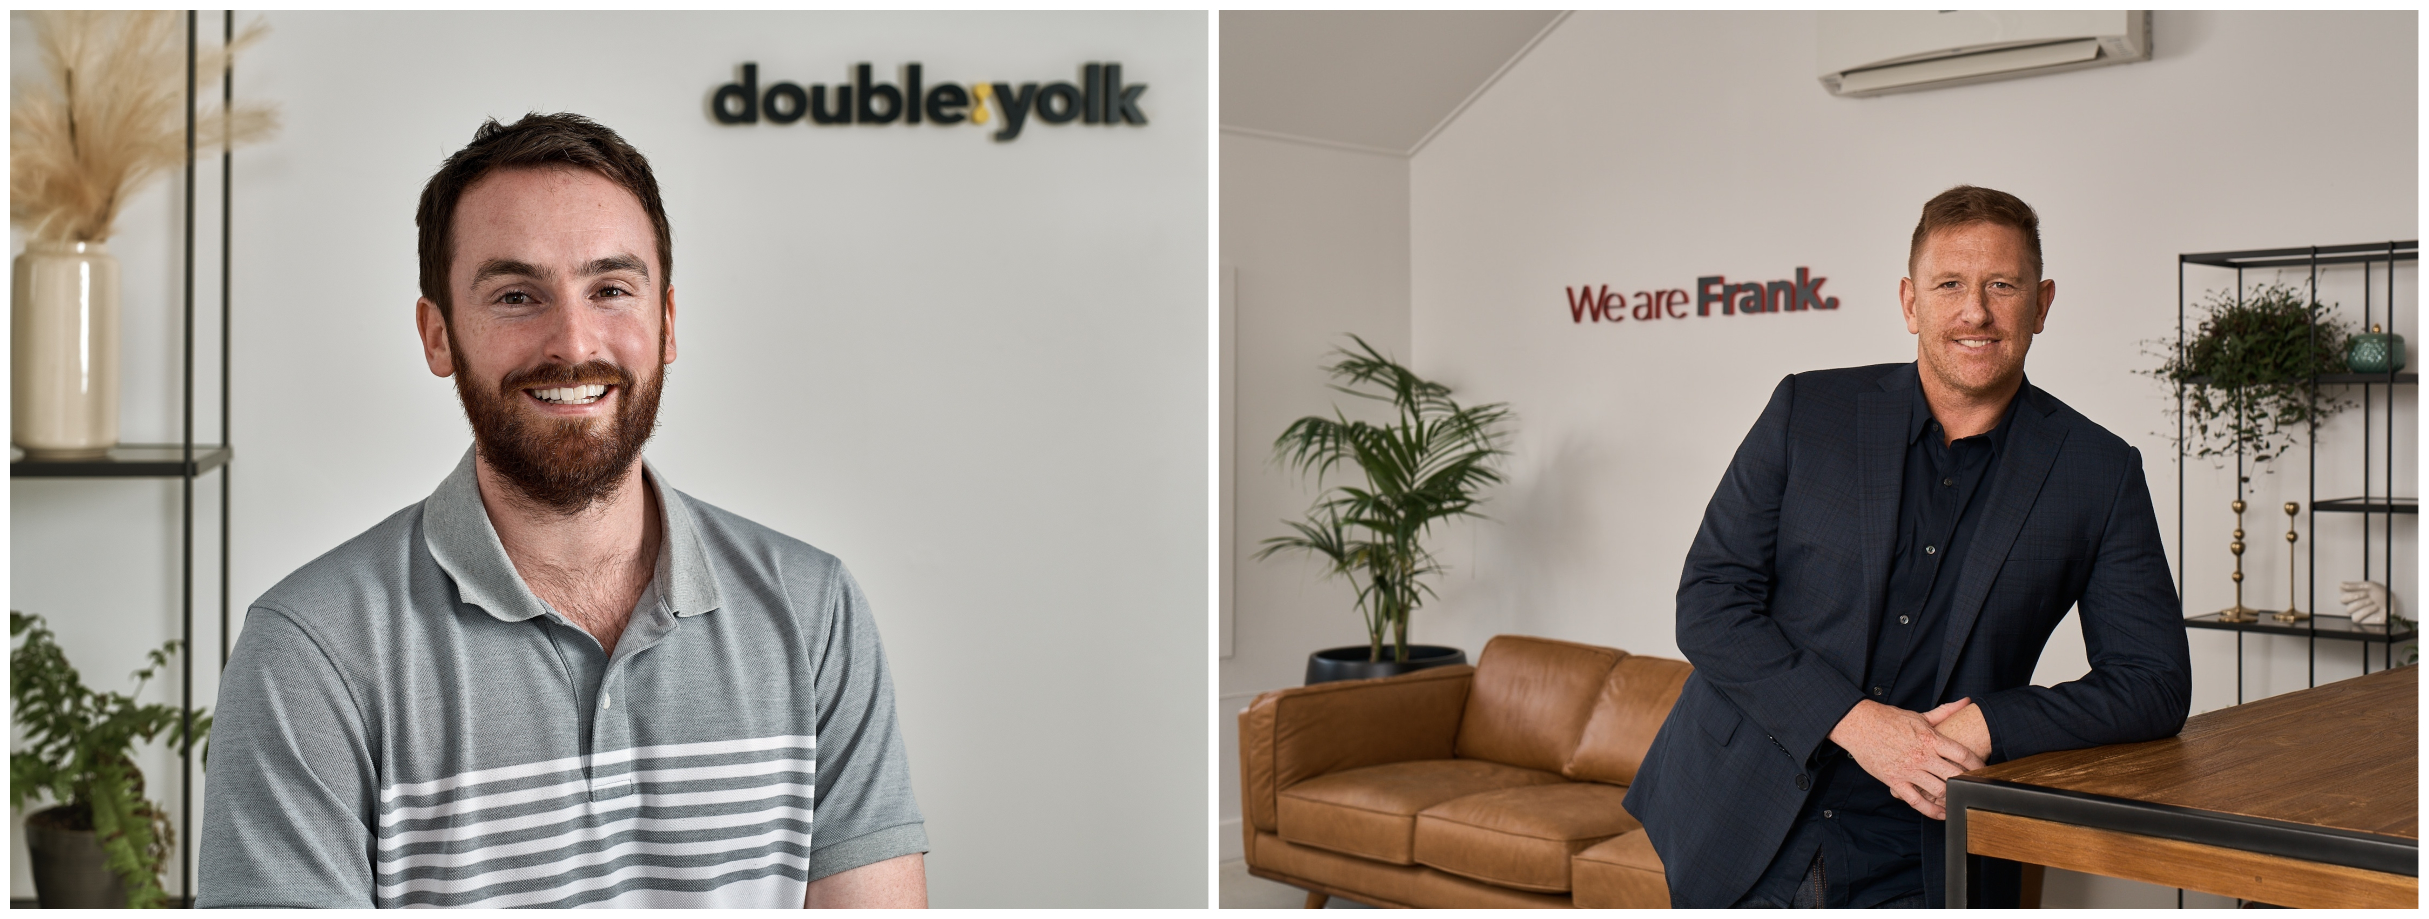 We Are Frank's Benjamin Searancke purchases stake in software solutions company Double Yolk